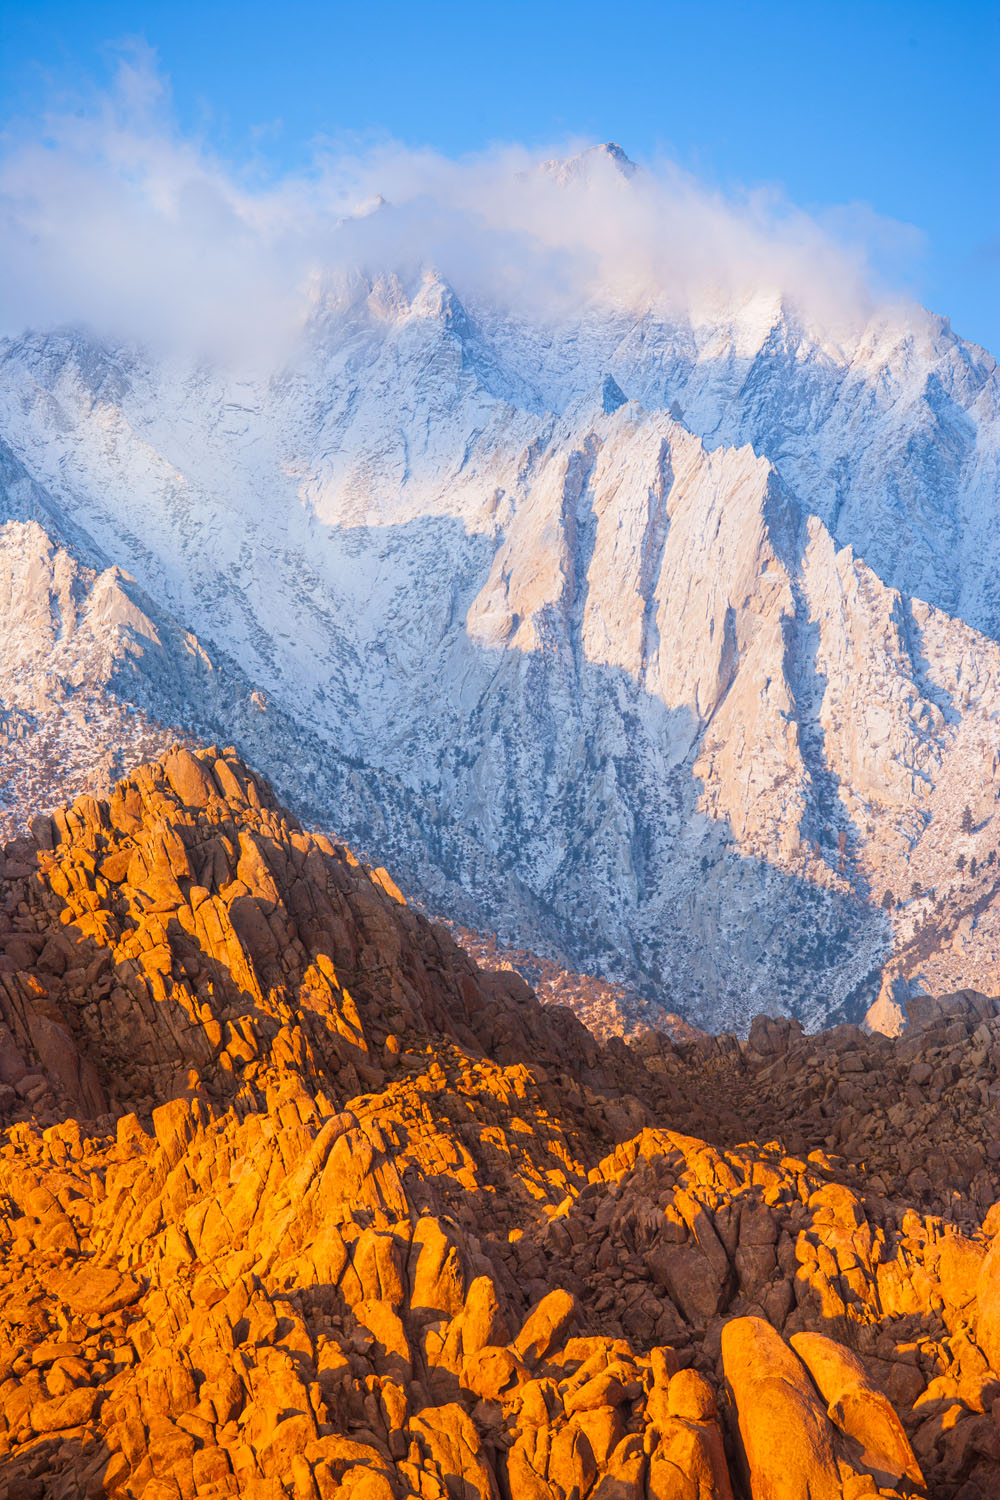 Sierra Nevada Mountains was photographed with a 300mm telephoto lens